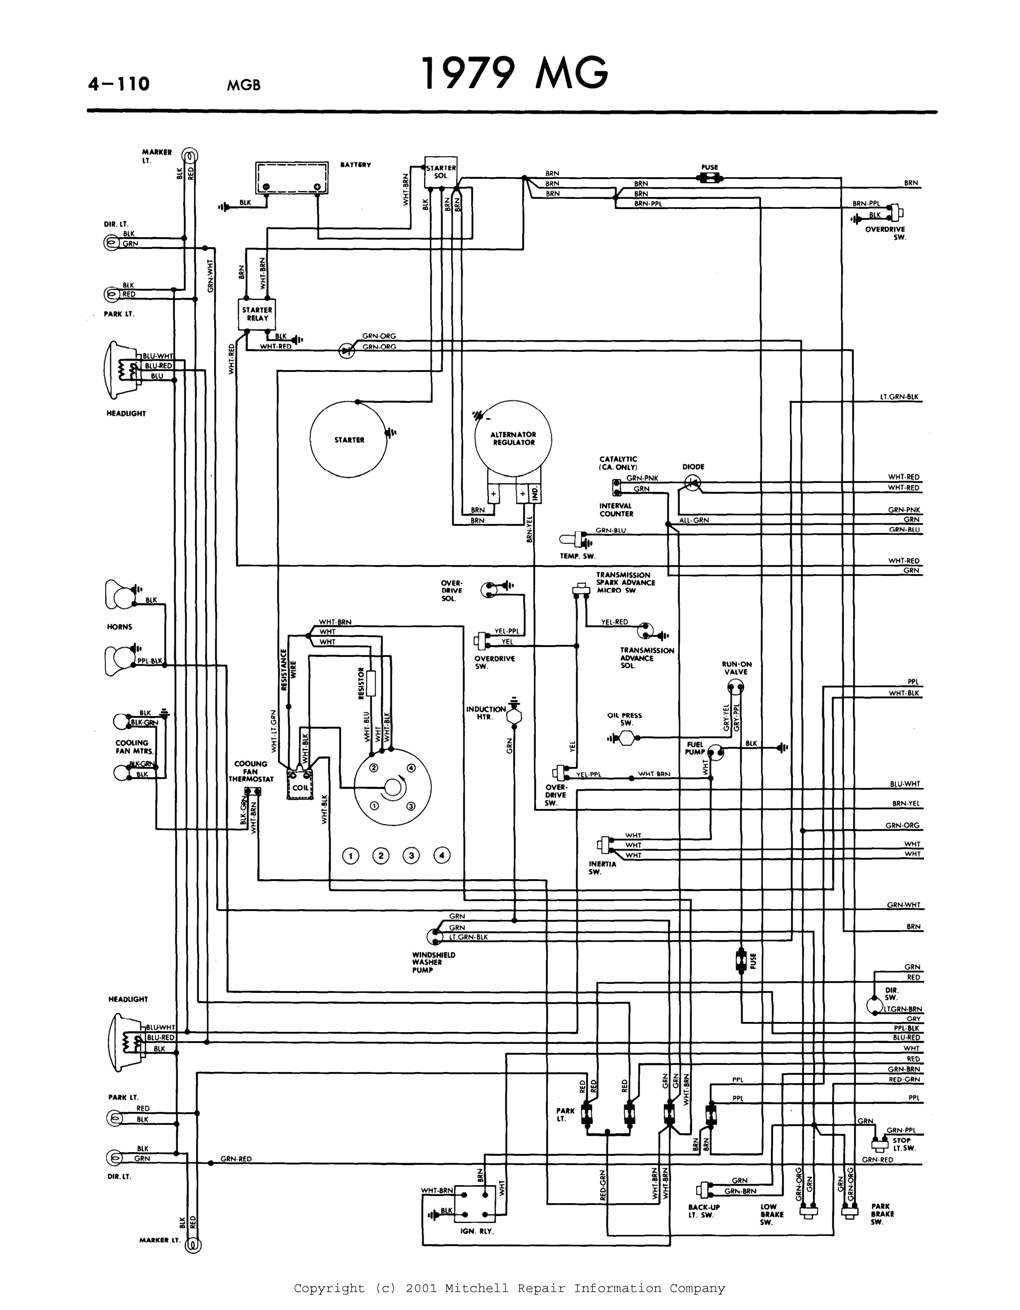 Diagram 1978 Mgb Wiring Diagram For Ignition Full Version Hd Quality For Ignition Pafireinstructor Aspentacom It